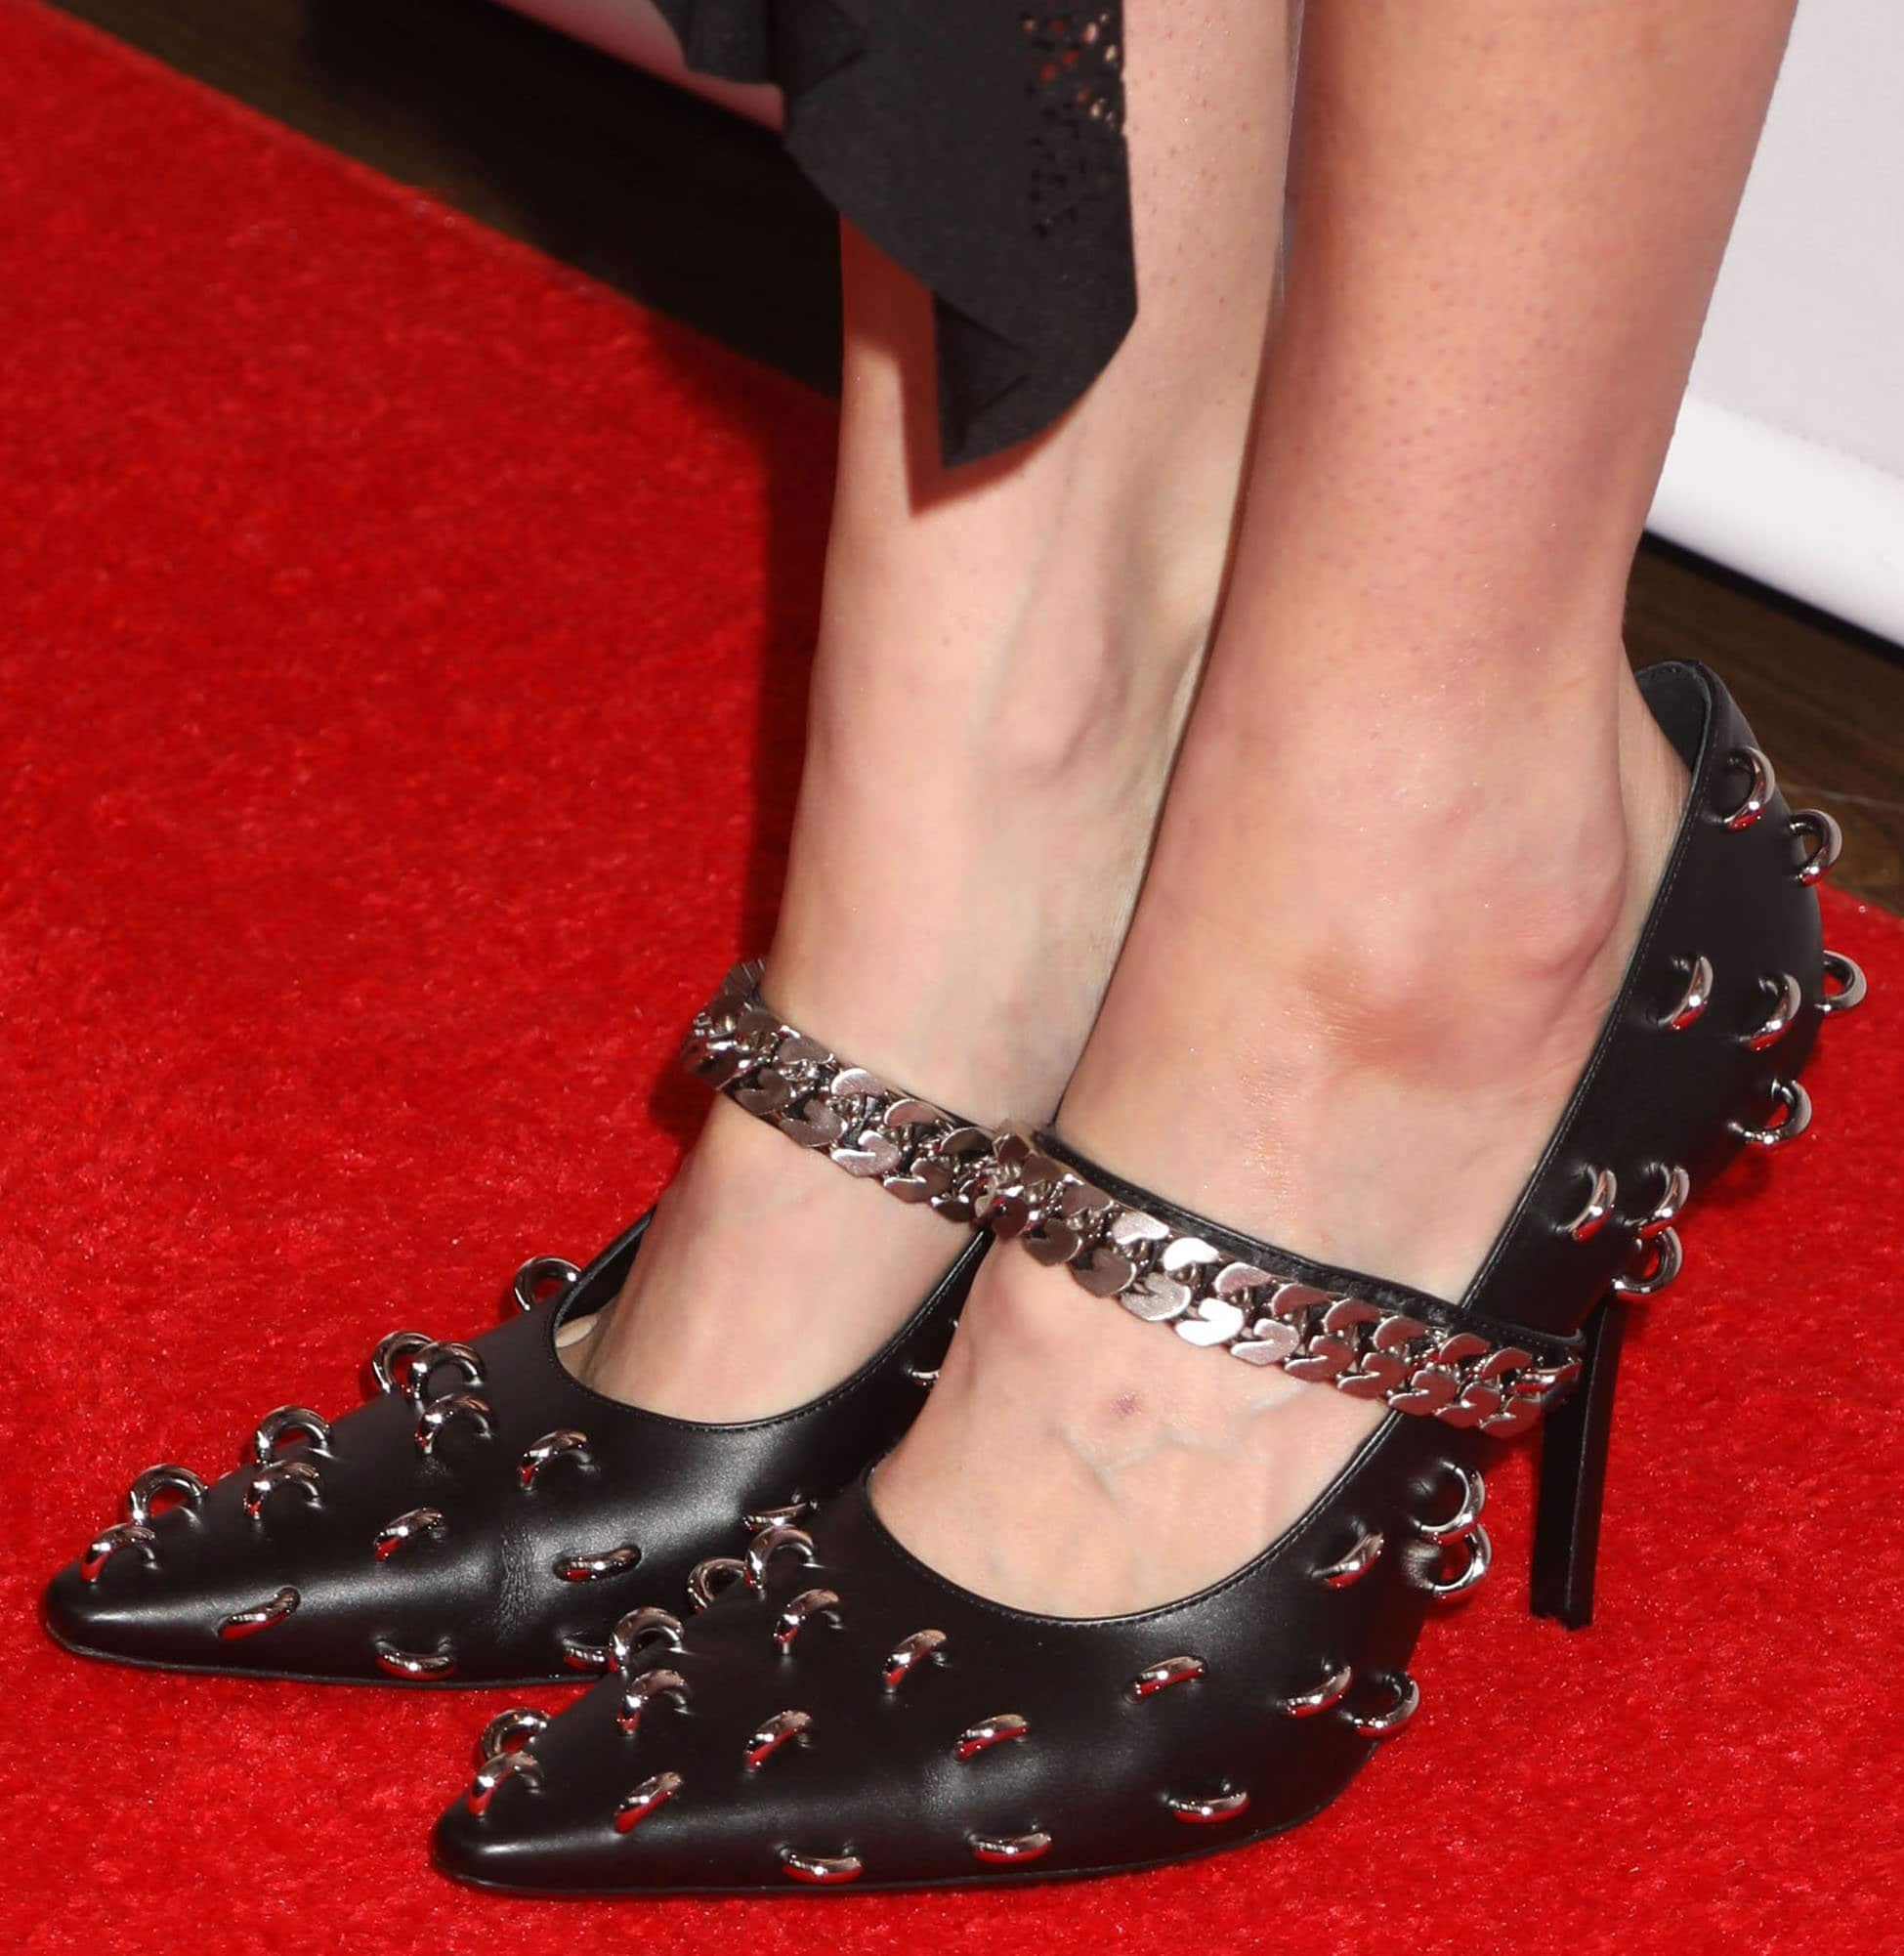 Gigi Hadid completes an edgy yet sexy look by showing off her feet in Givenchy metal hoop-embellished pumps